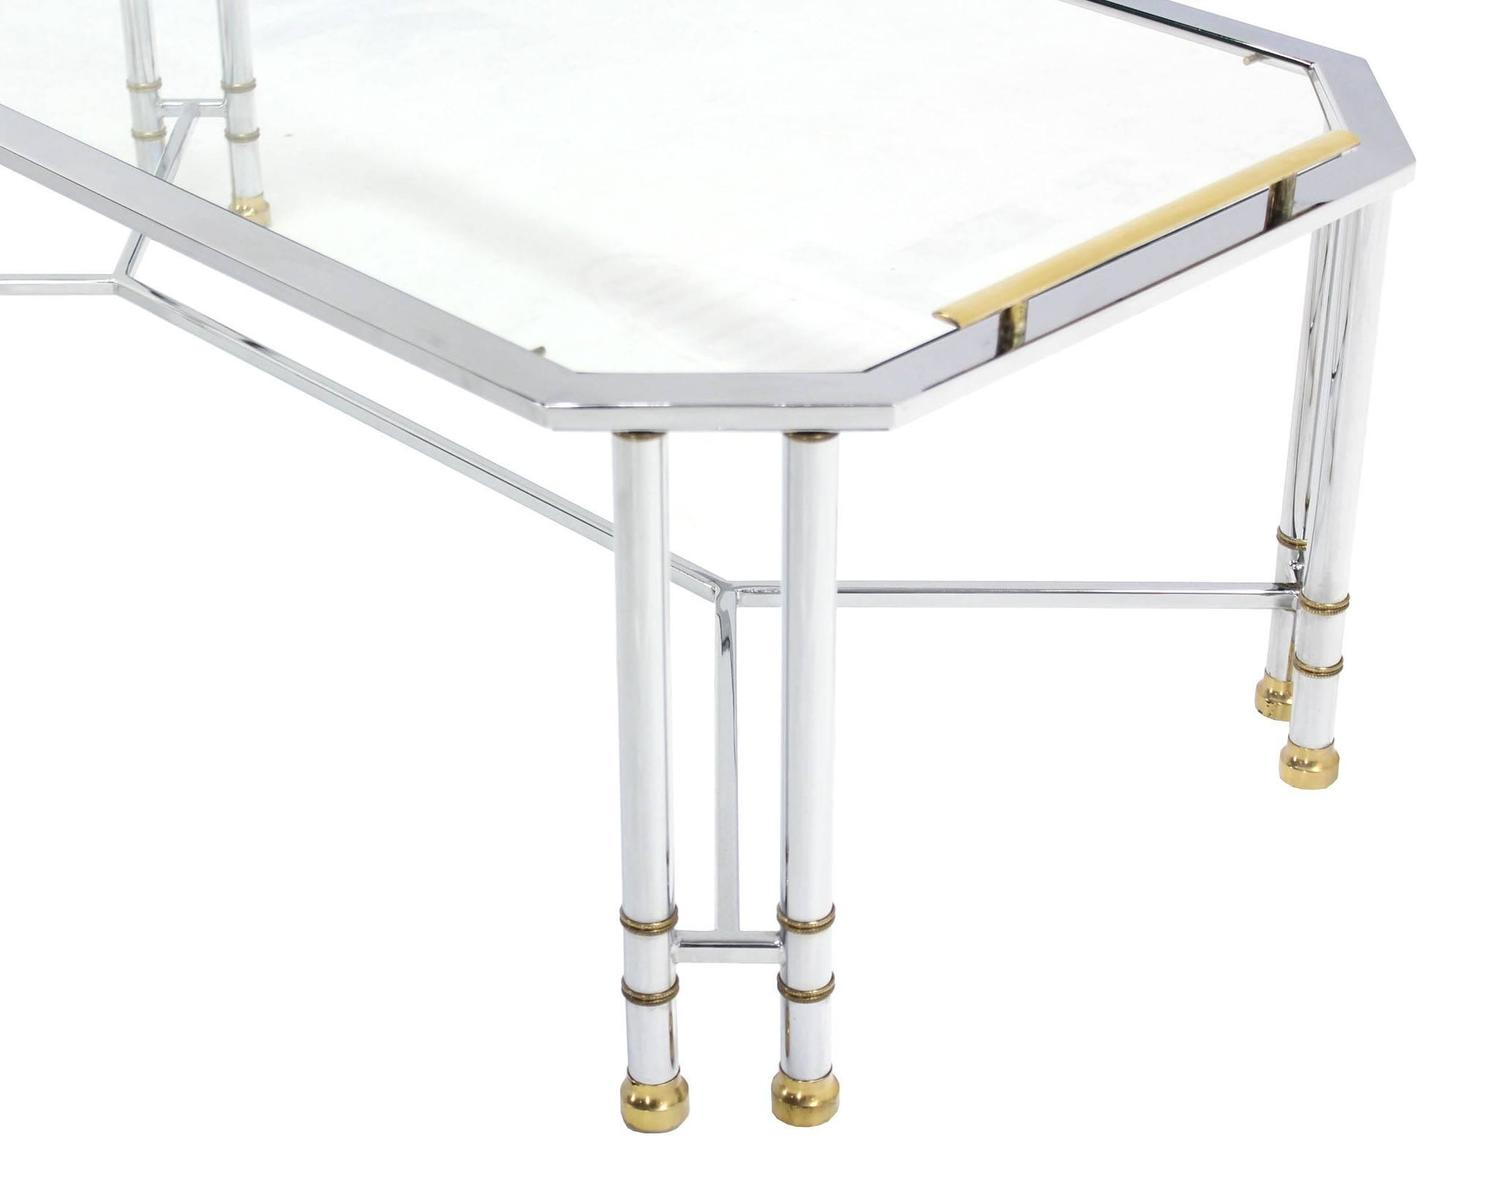 Rectangular Chrome Brass Glass Coffee Table Tray Style For Sale At 1stdibs